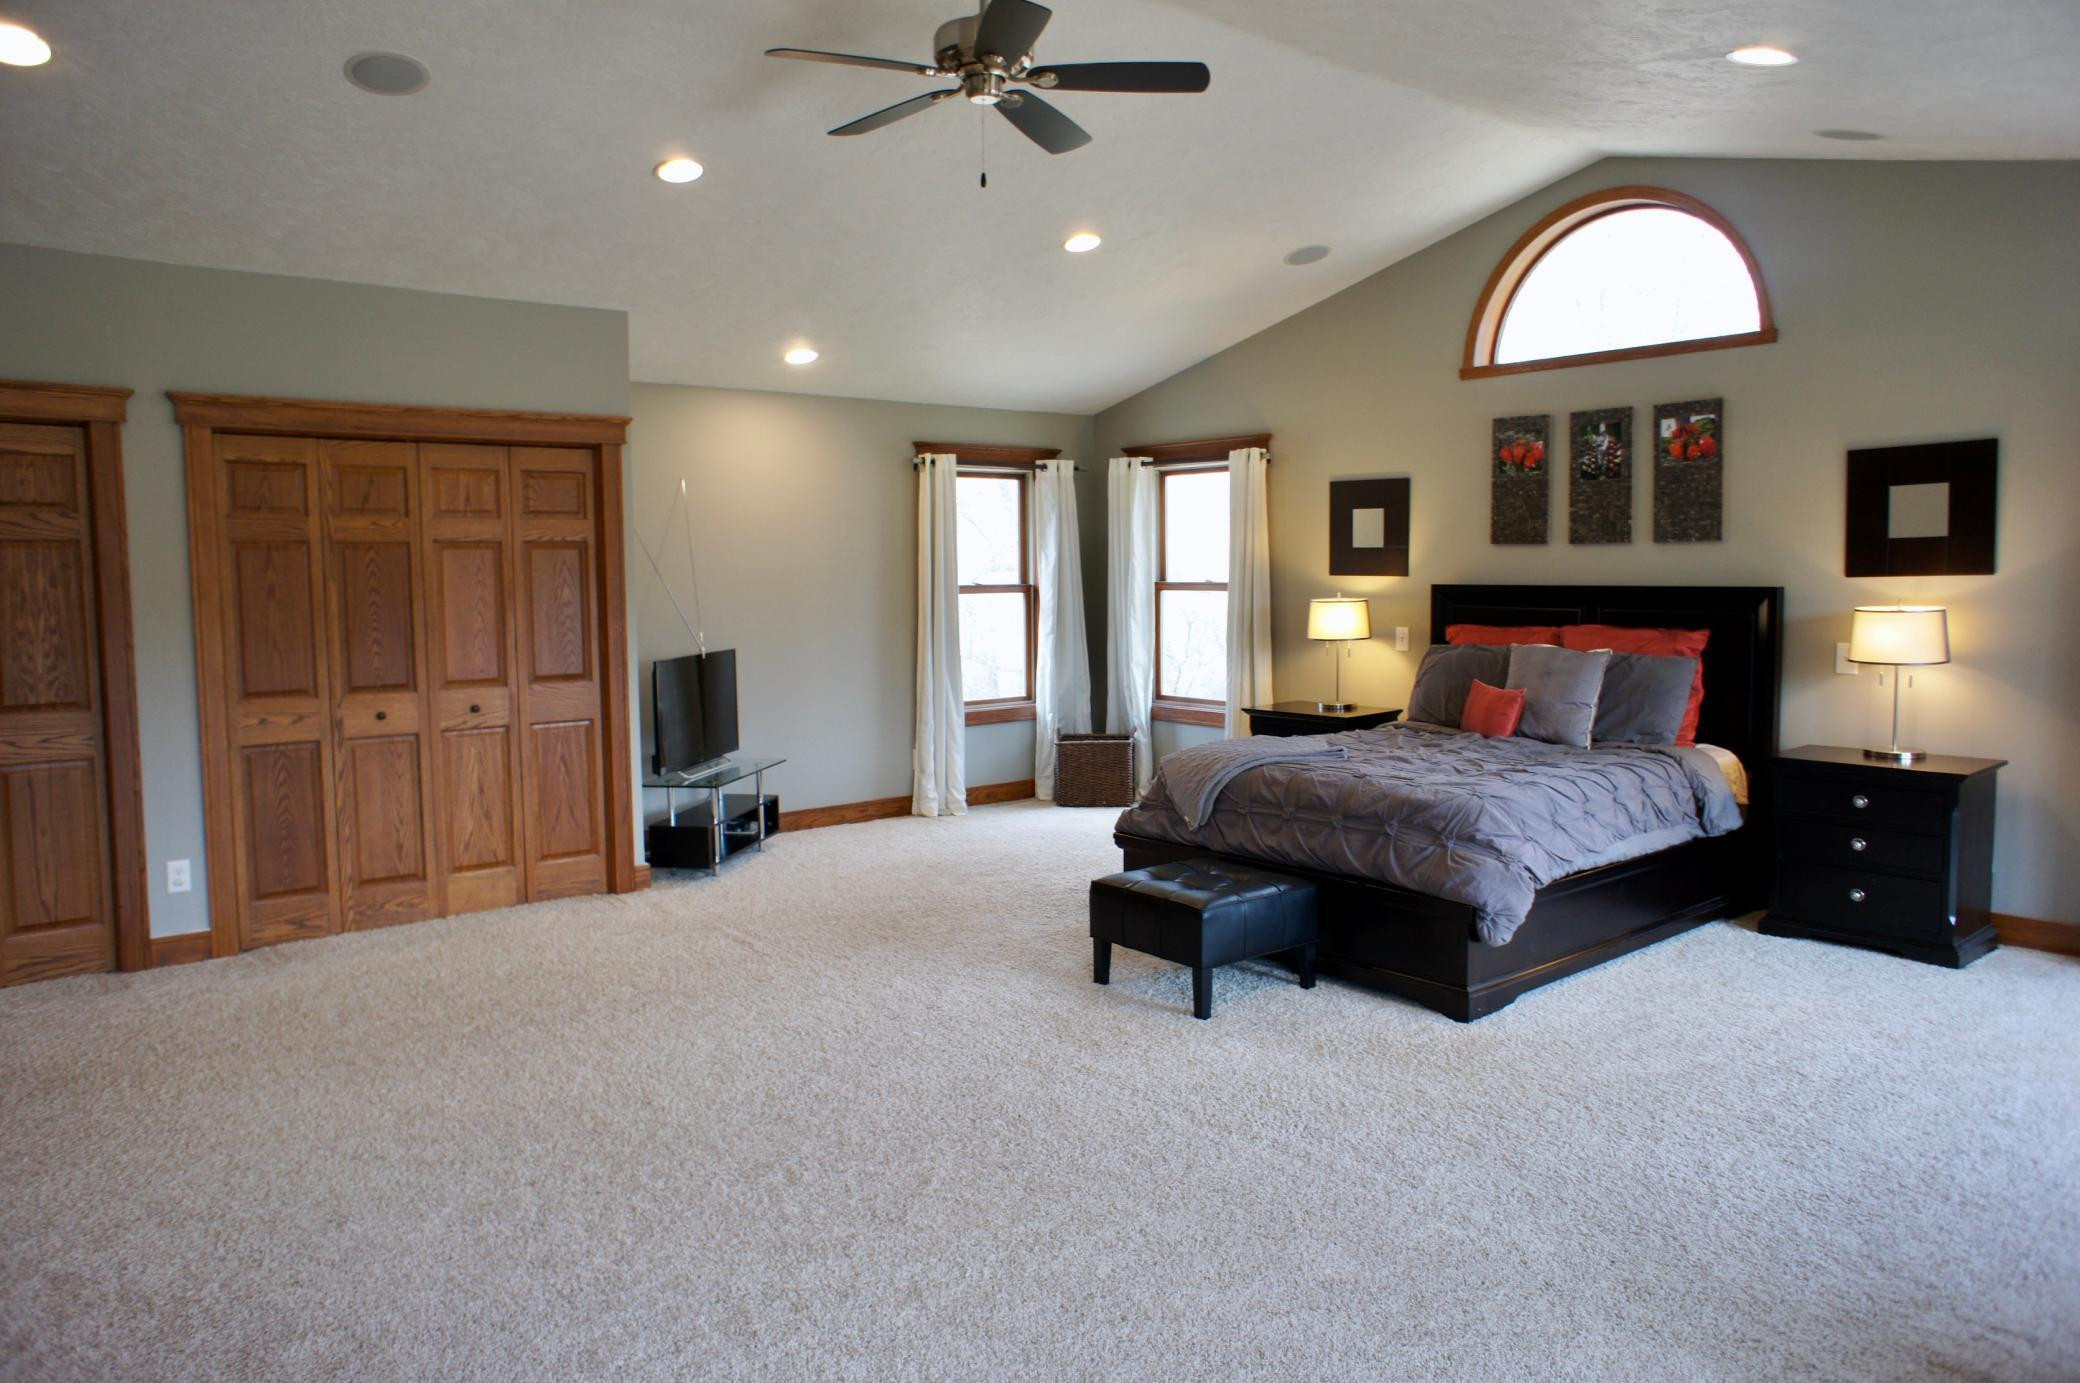 Another view showing the double closets and vaulted ceilings